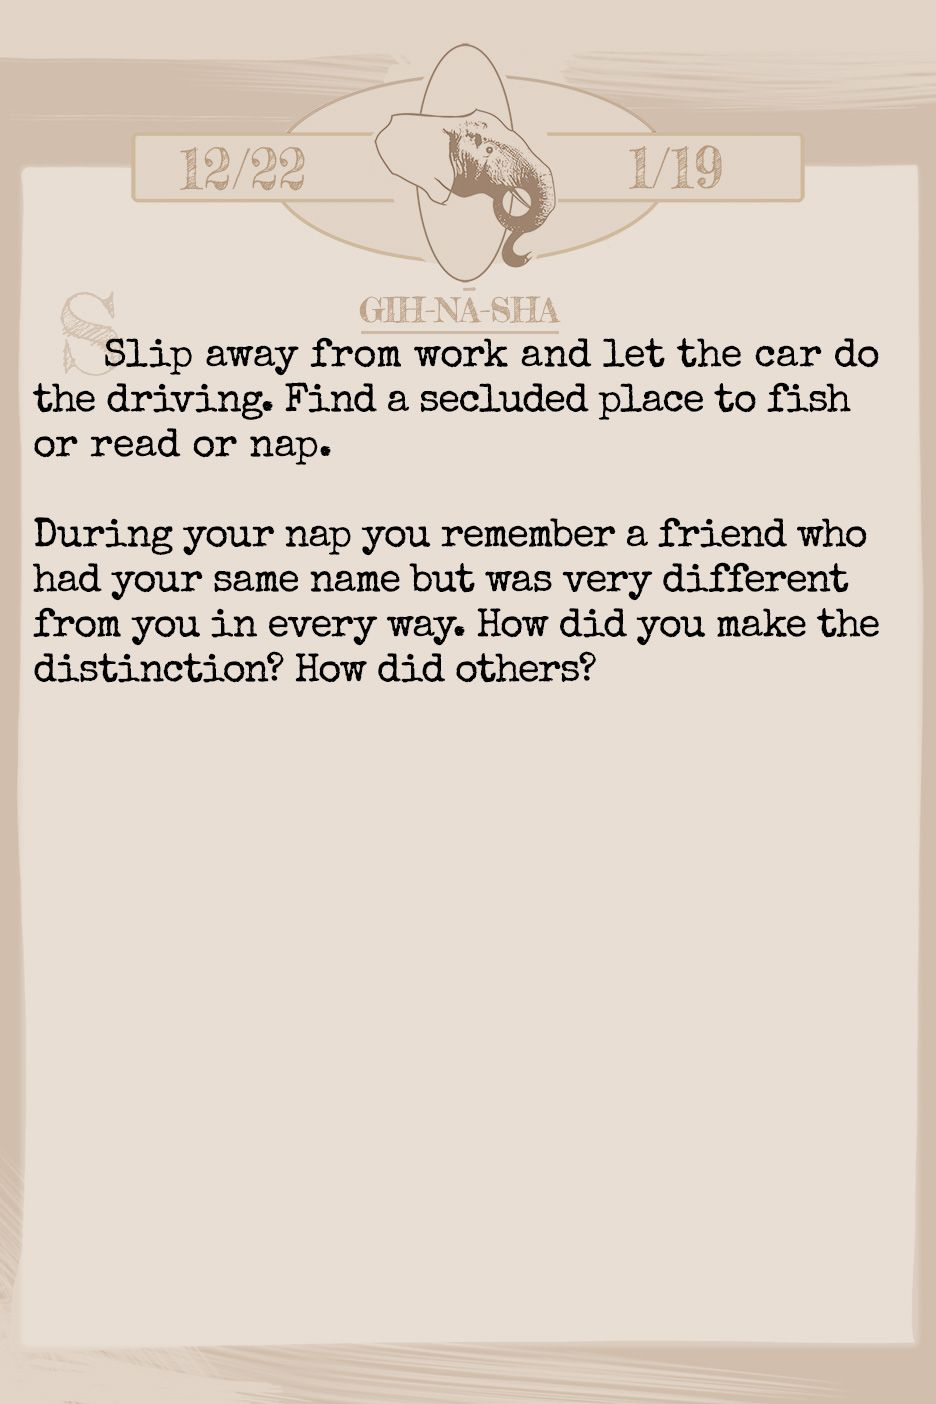 July 2019 Horoscope (Old sign: Capricorn) Slip away from work and let the car do the driving. Find a secluded place to fish or read or nap. During your nap you remember a friend who had your same name but was very different from you in every way. How did you make the distinction? How did others?